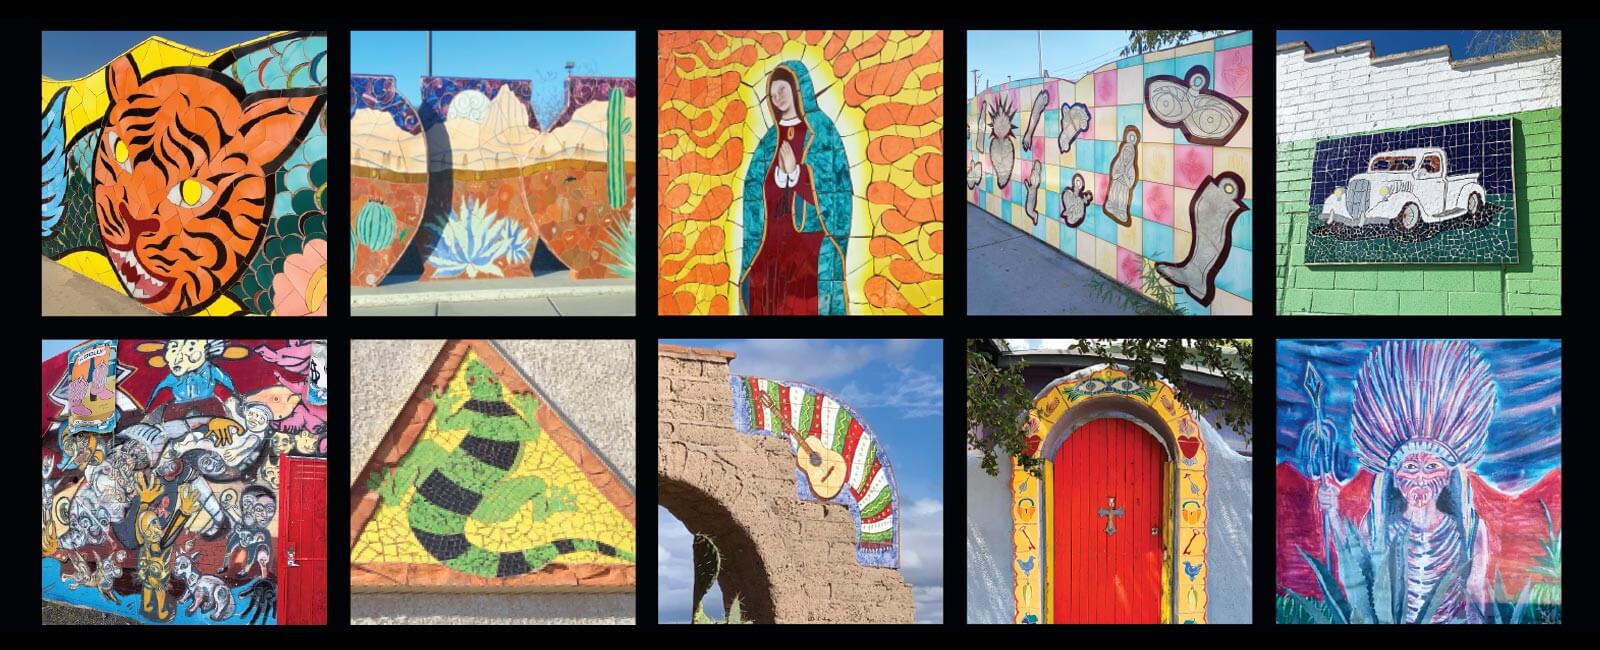 A colorful collection of mosaics and murals found around South Tucson, Arizona.